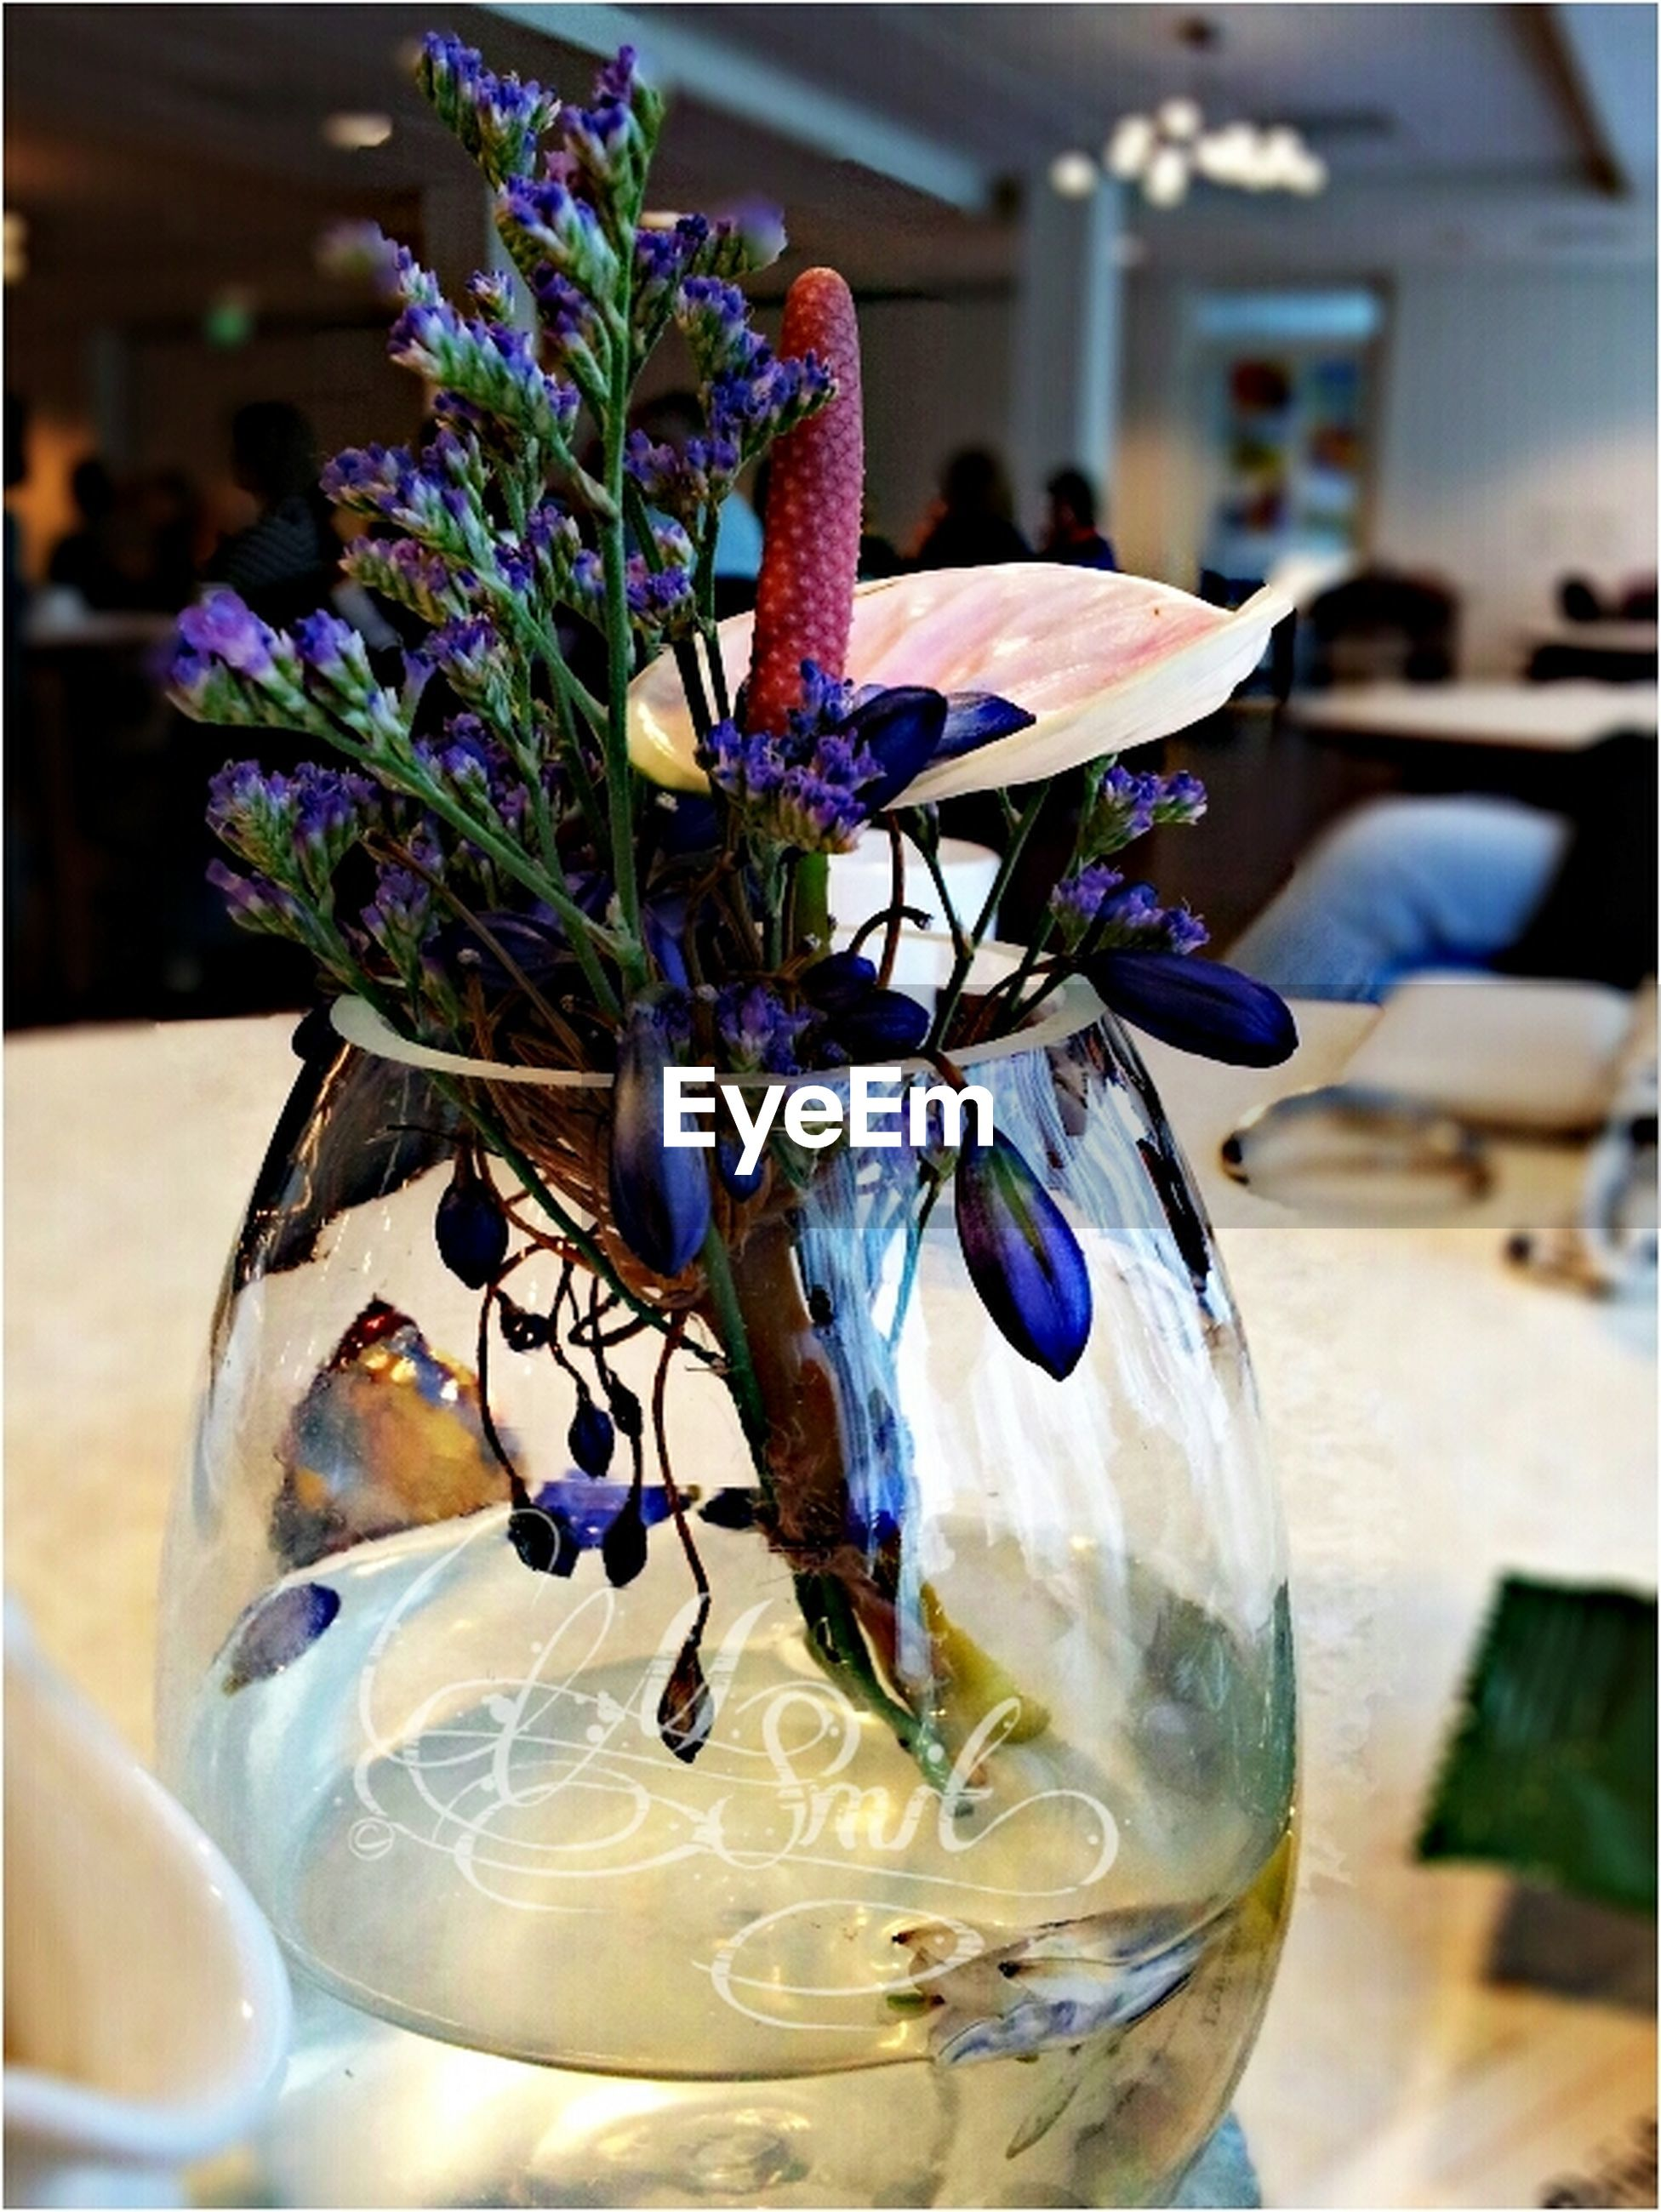 indoors, table, freshness, close-up, flower, focus on foreground, glass - material, still life, purple, fragility, vase, food and drink, drinking glass, transparent, blue, decoration, drink, selective focus, refreshment, no people